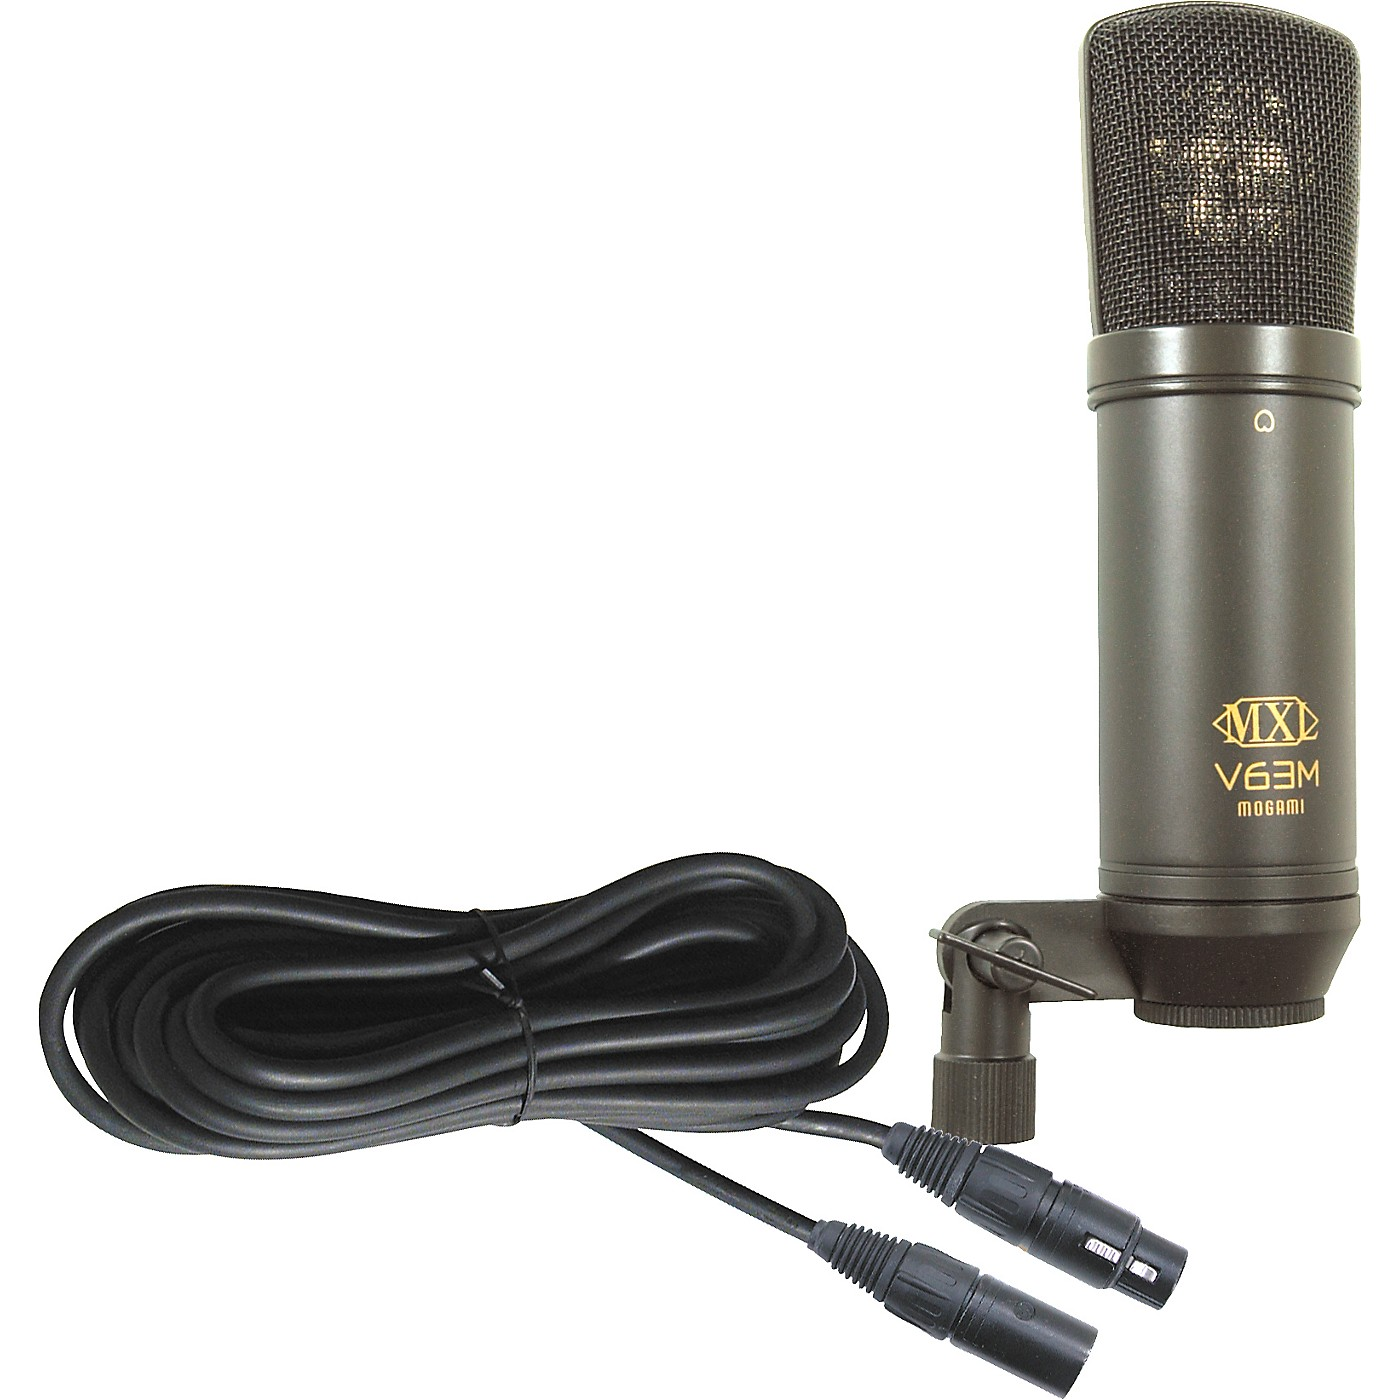 MXL V63M Condender Studio Mic with Mogami Mic Cable thumbnail